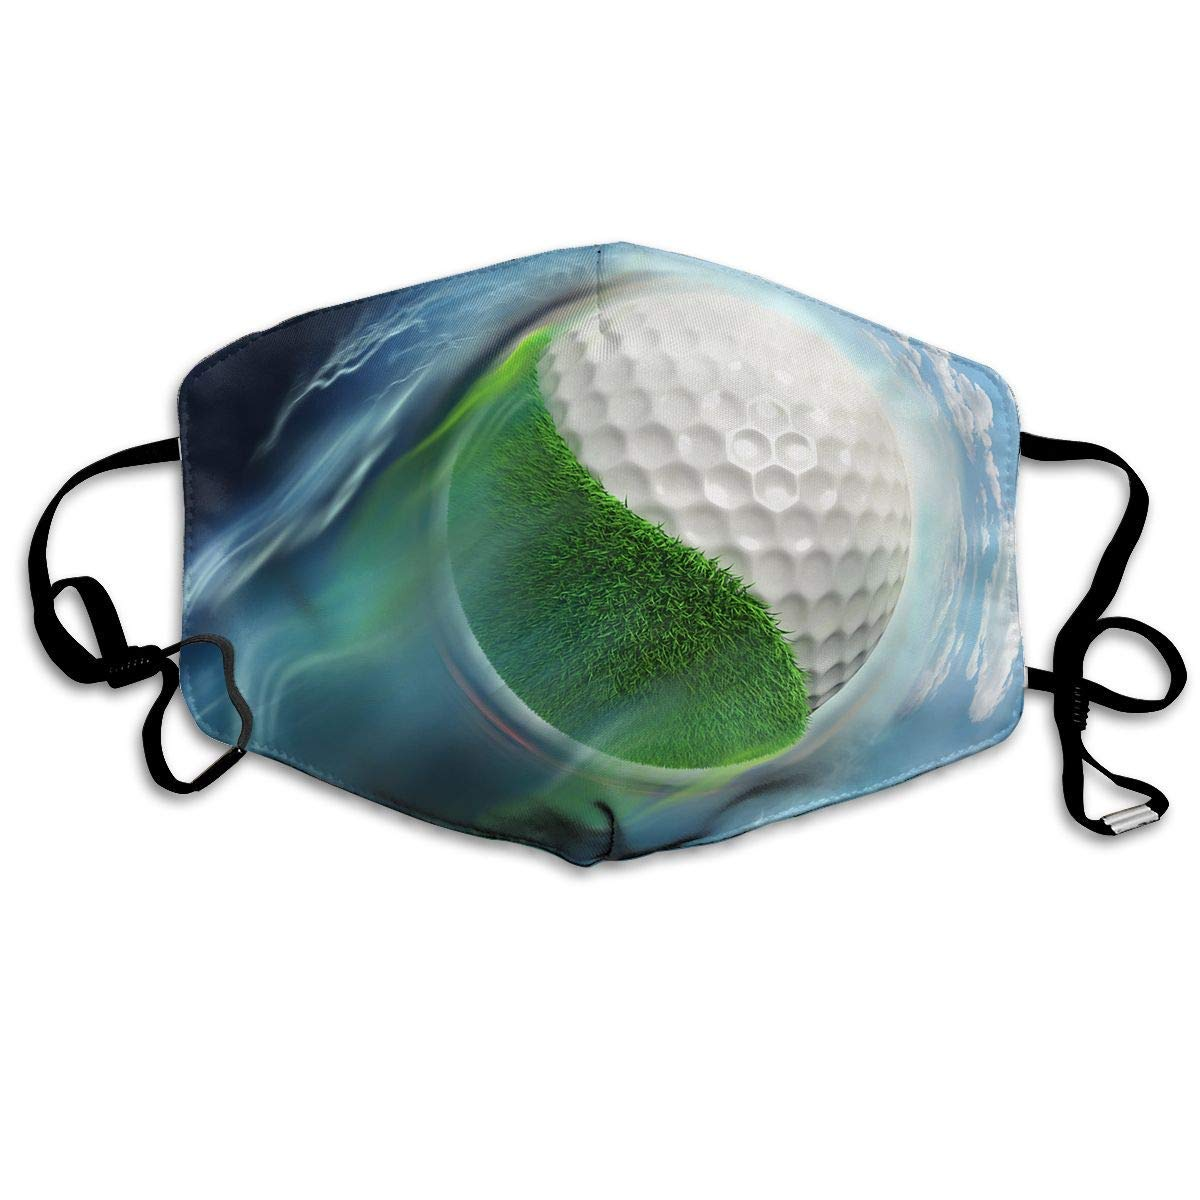 Daawqee Máscara de Boca, Antipolvo Cubierta de Boca Golf Course Print Reusable Washable Earloop Máscara de Boca for Men Women